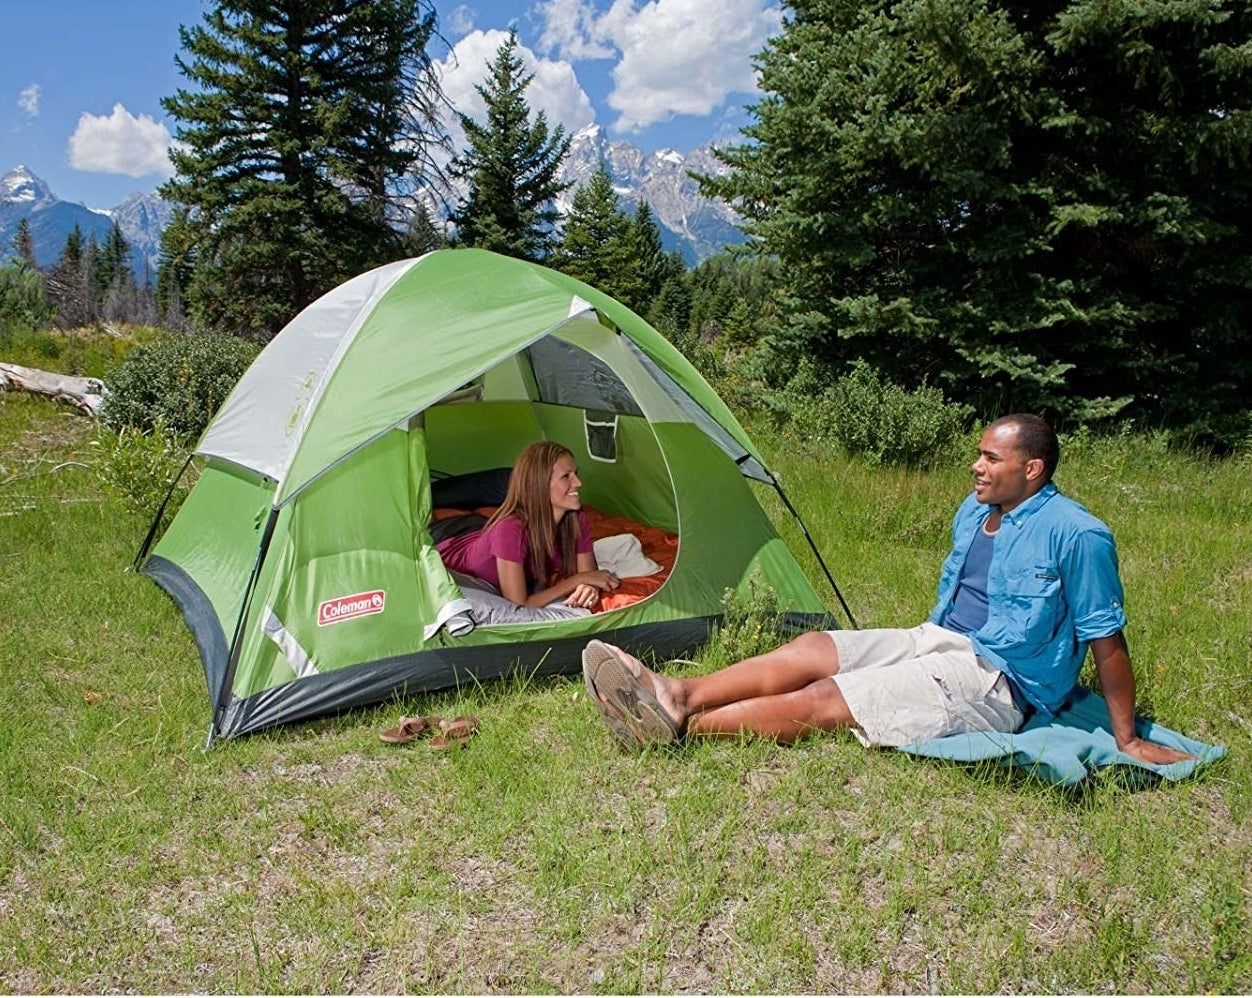 Two models using the four-person tent